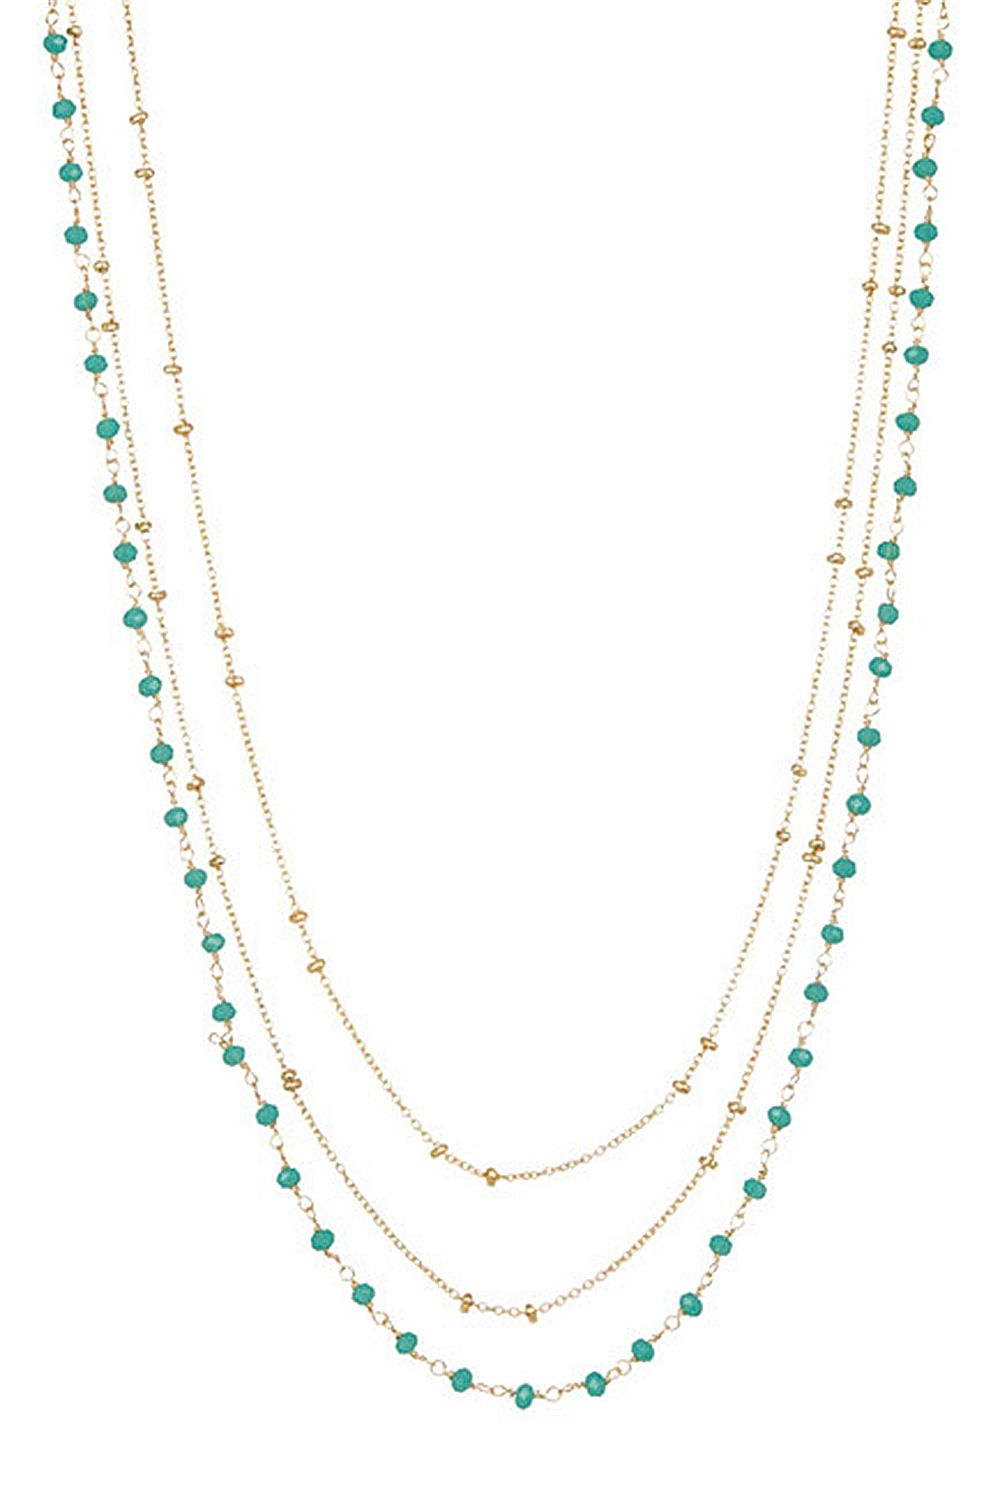 Laguna Collections Triple Strand Necklace